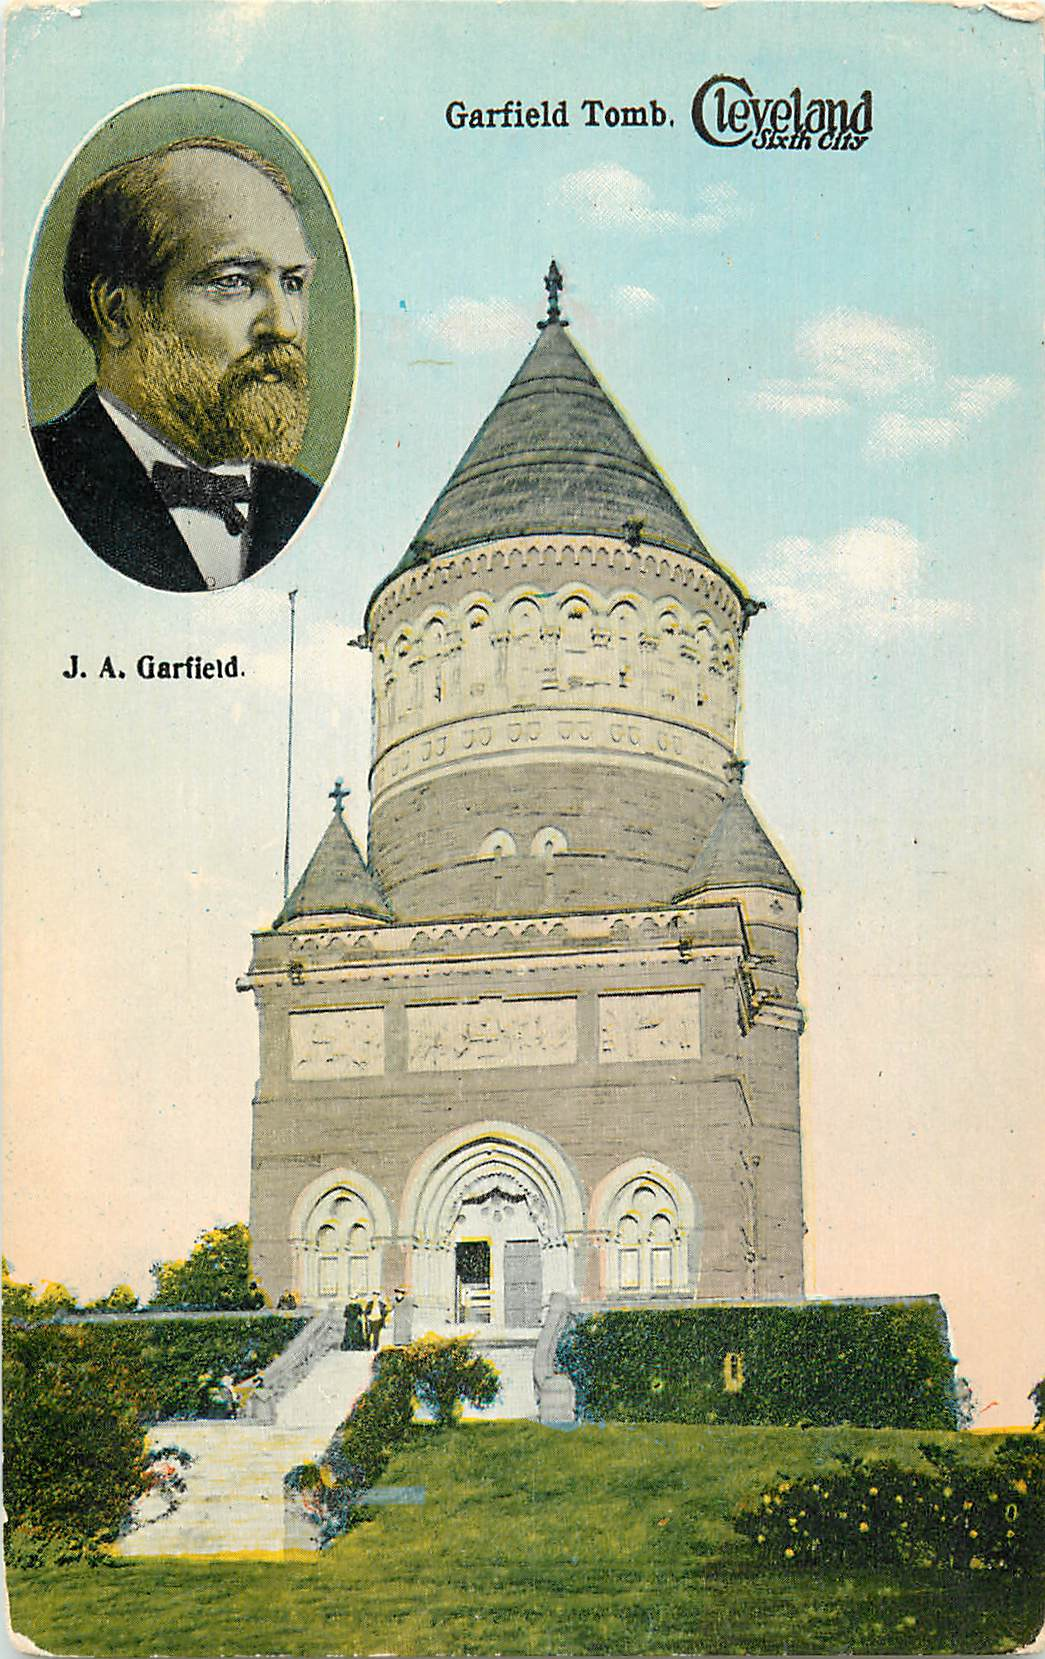 """Garfield Tomb, Cleveland Sixth City"""